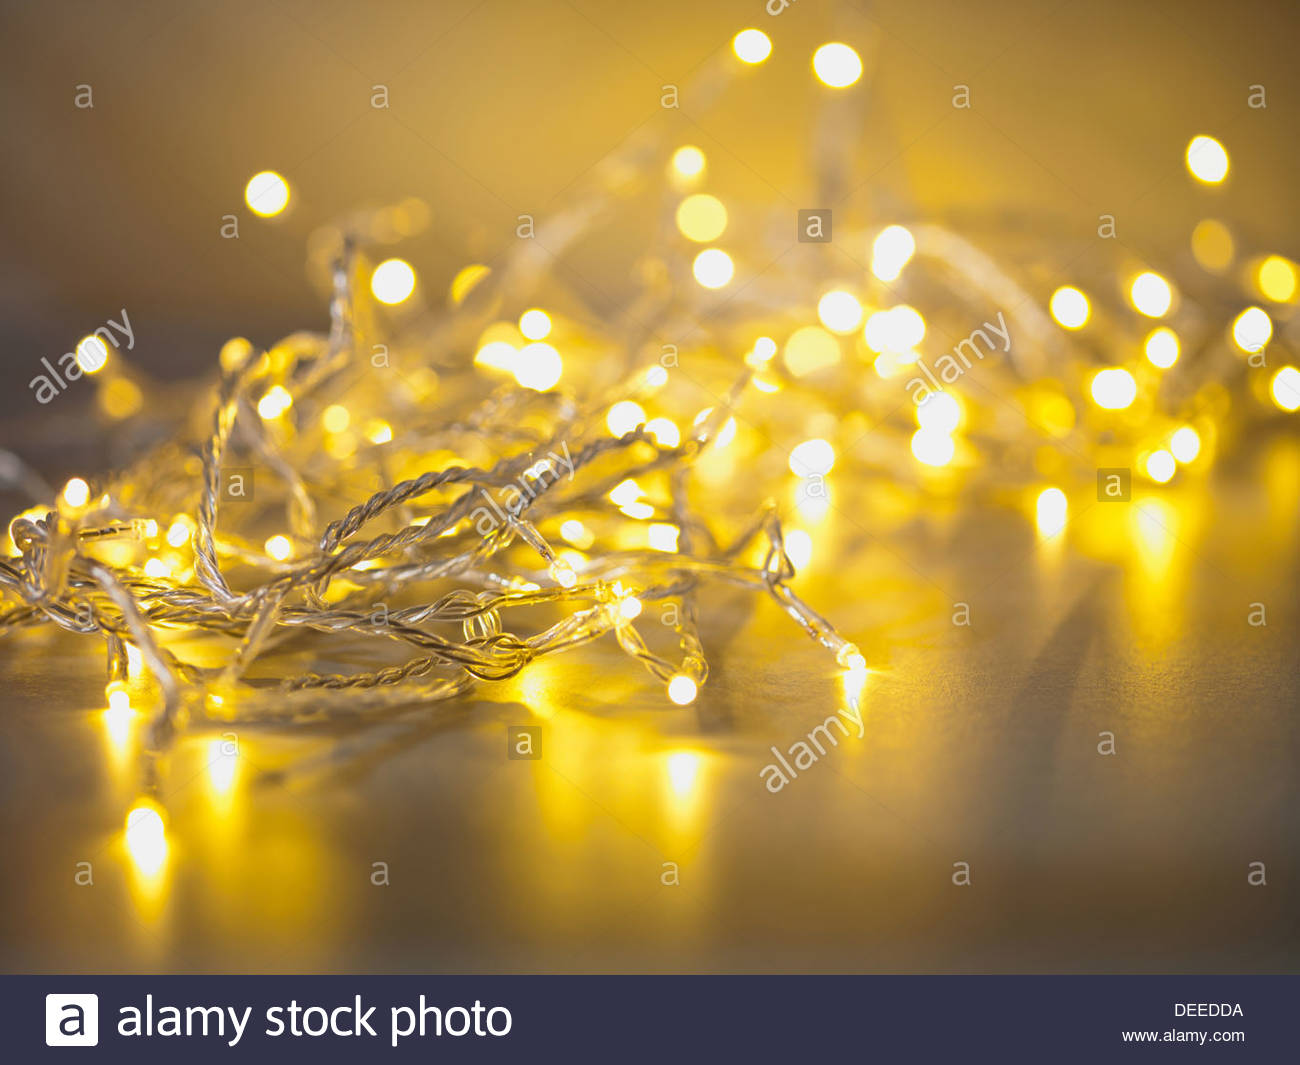 Pile of illuminated string lights - Stock Image